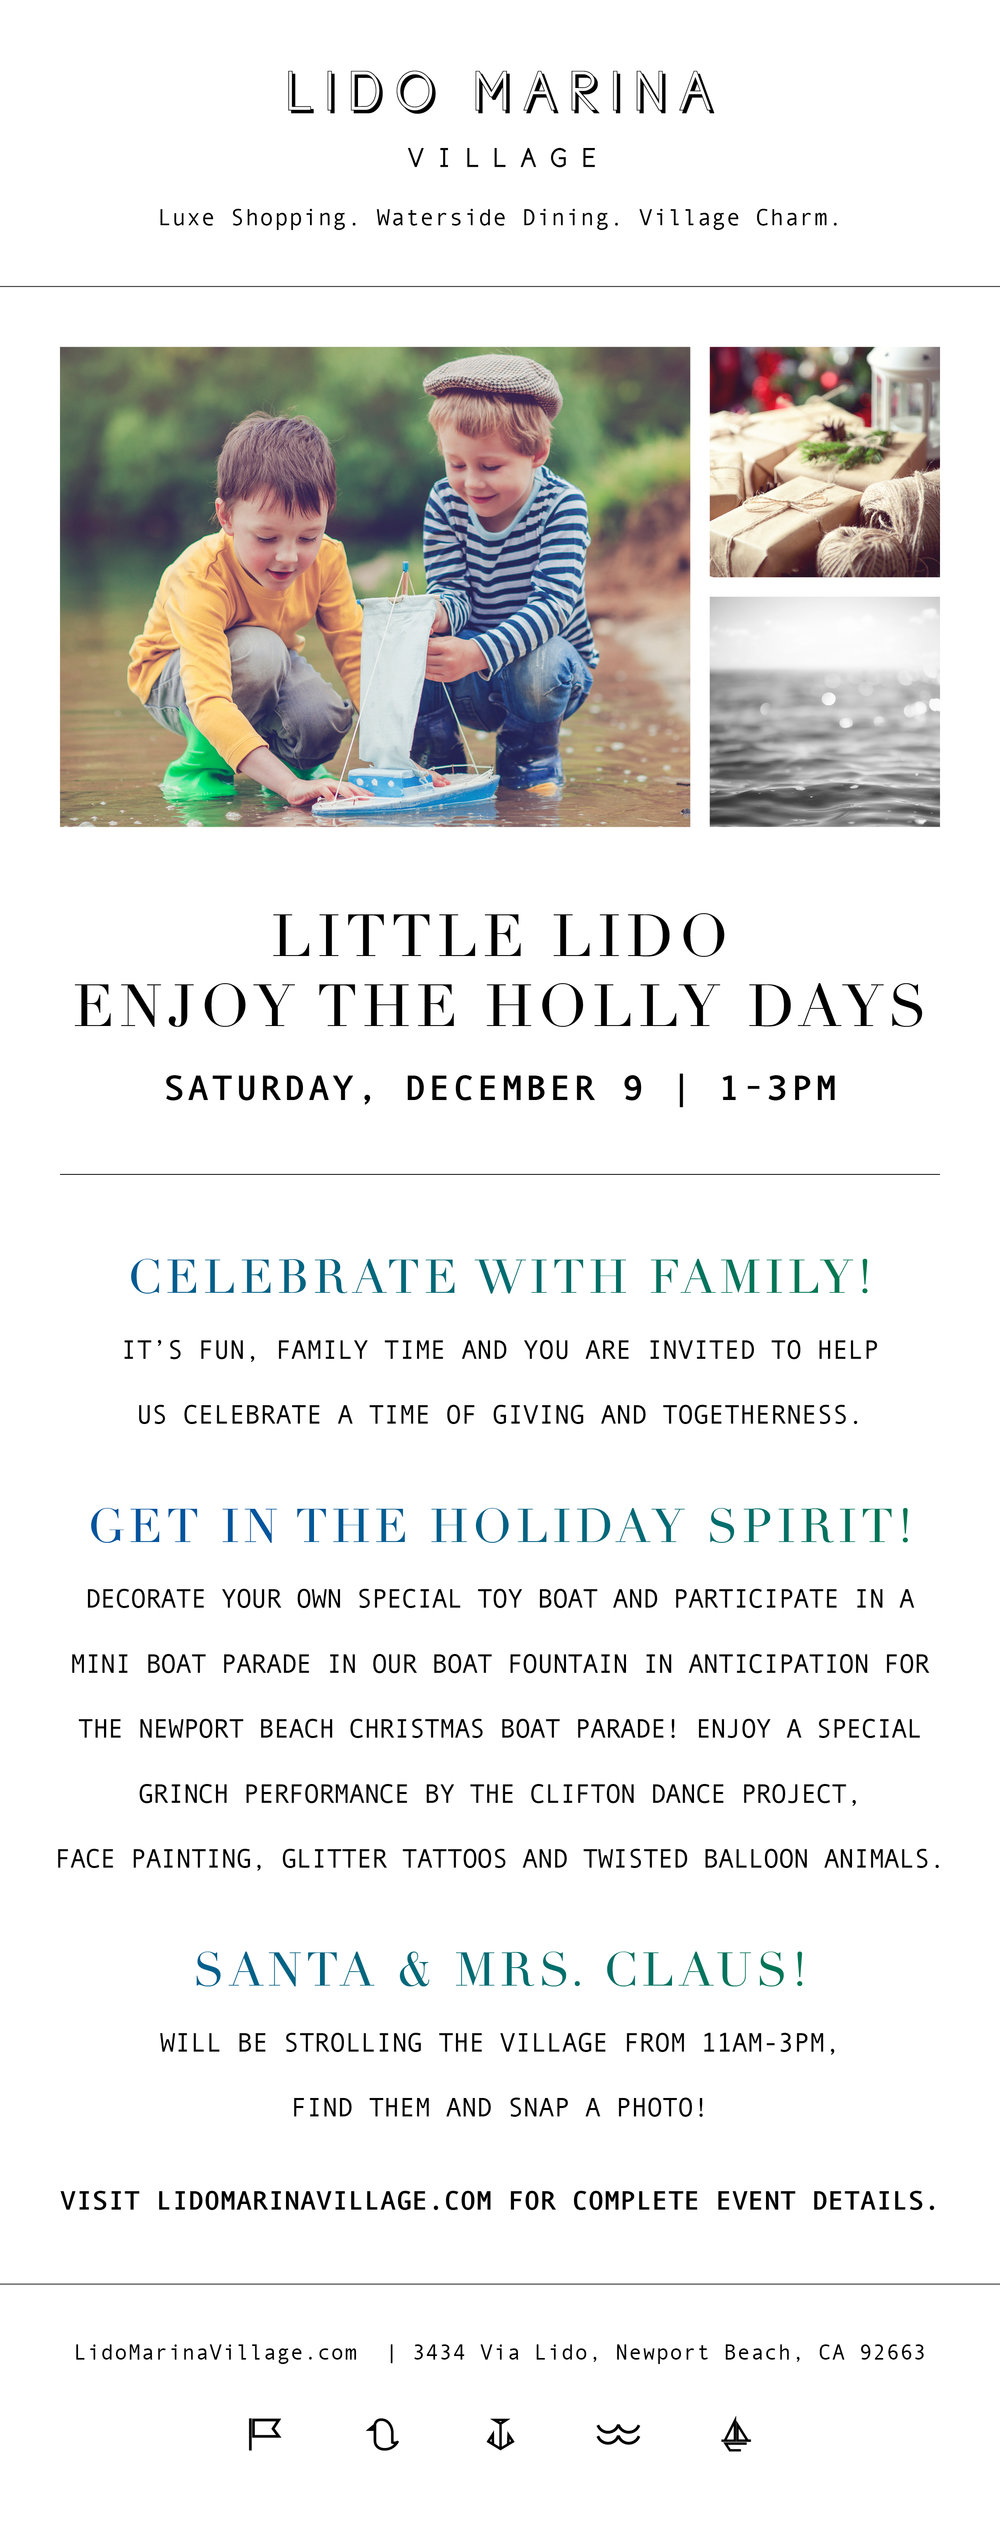 Lido_Little Lido_Dec 9_Web Asset_FINAL_2.jpg